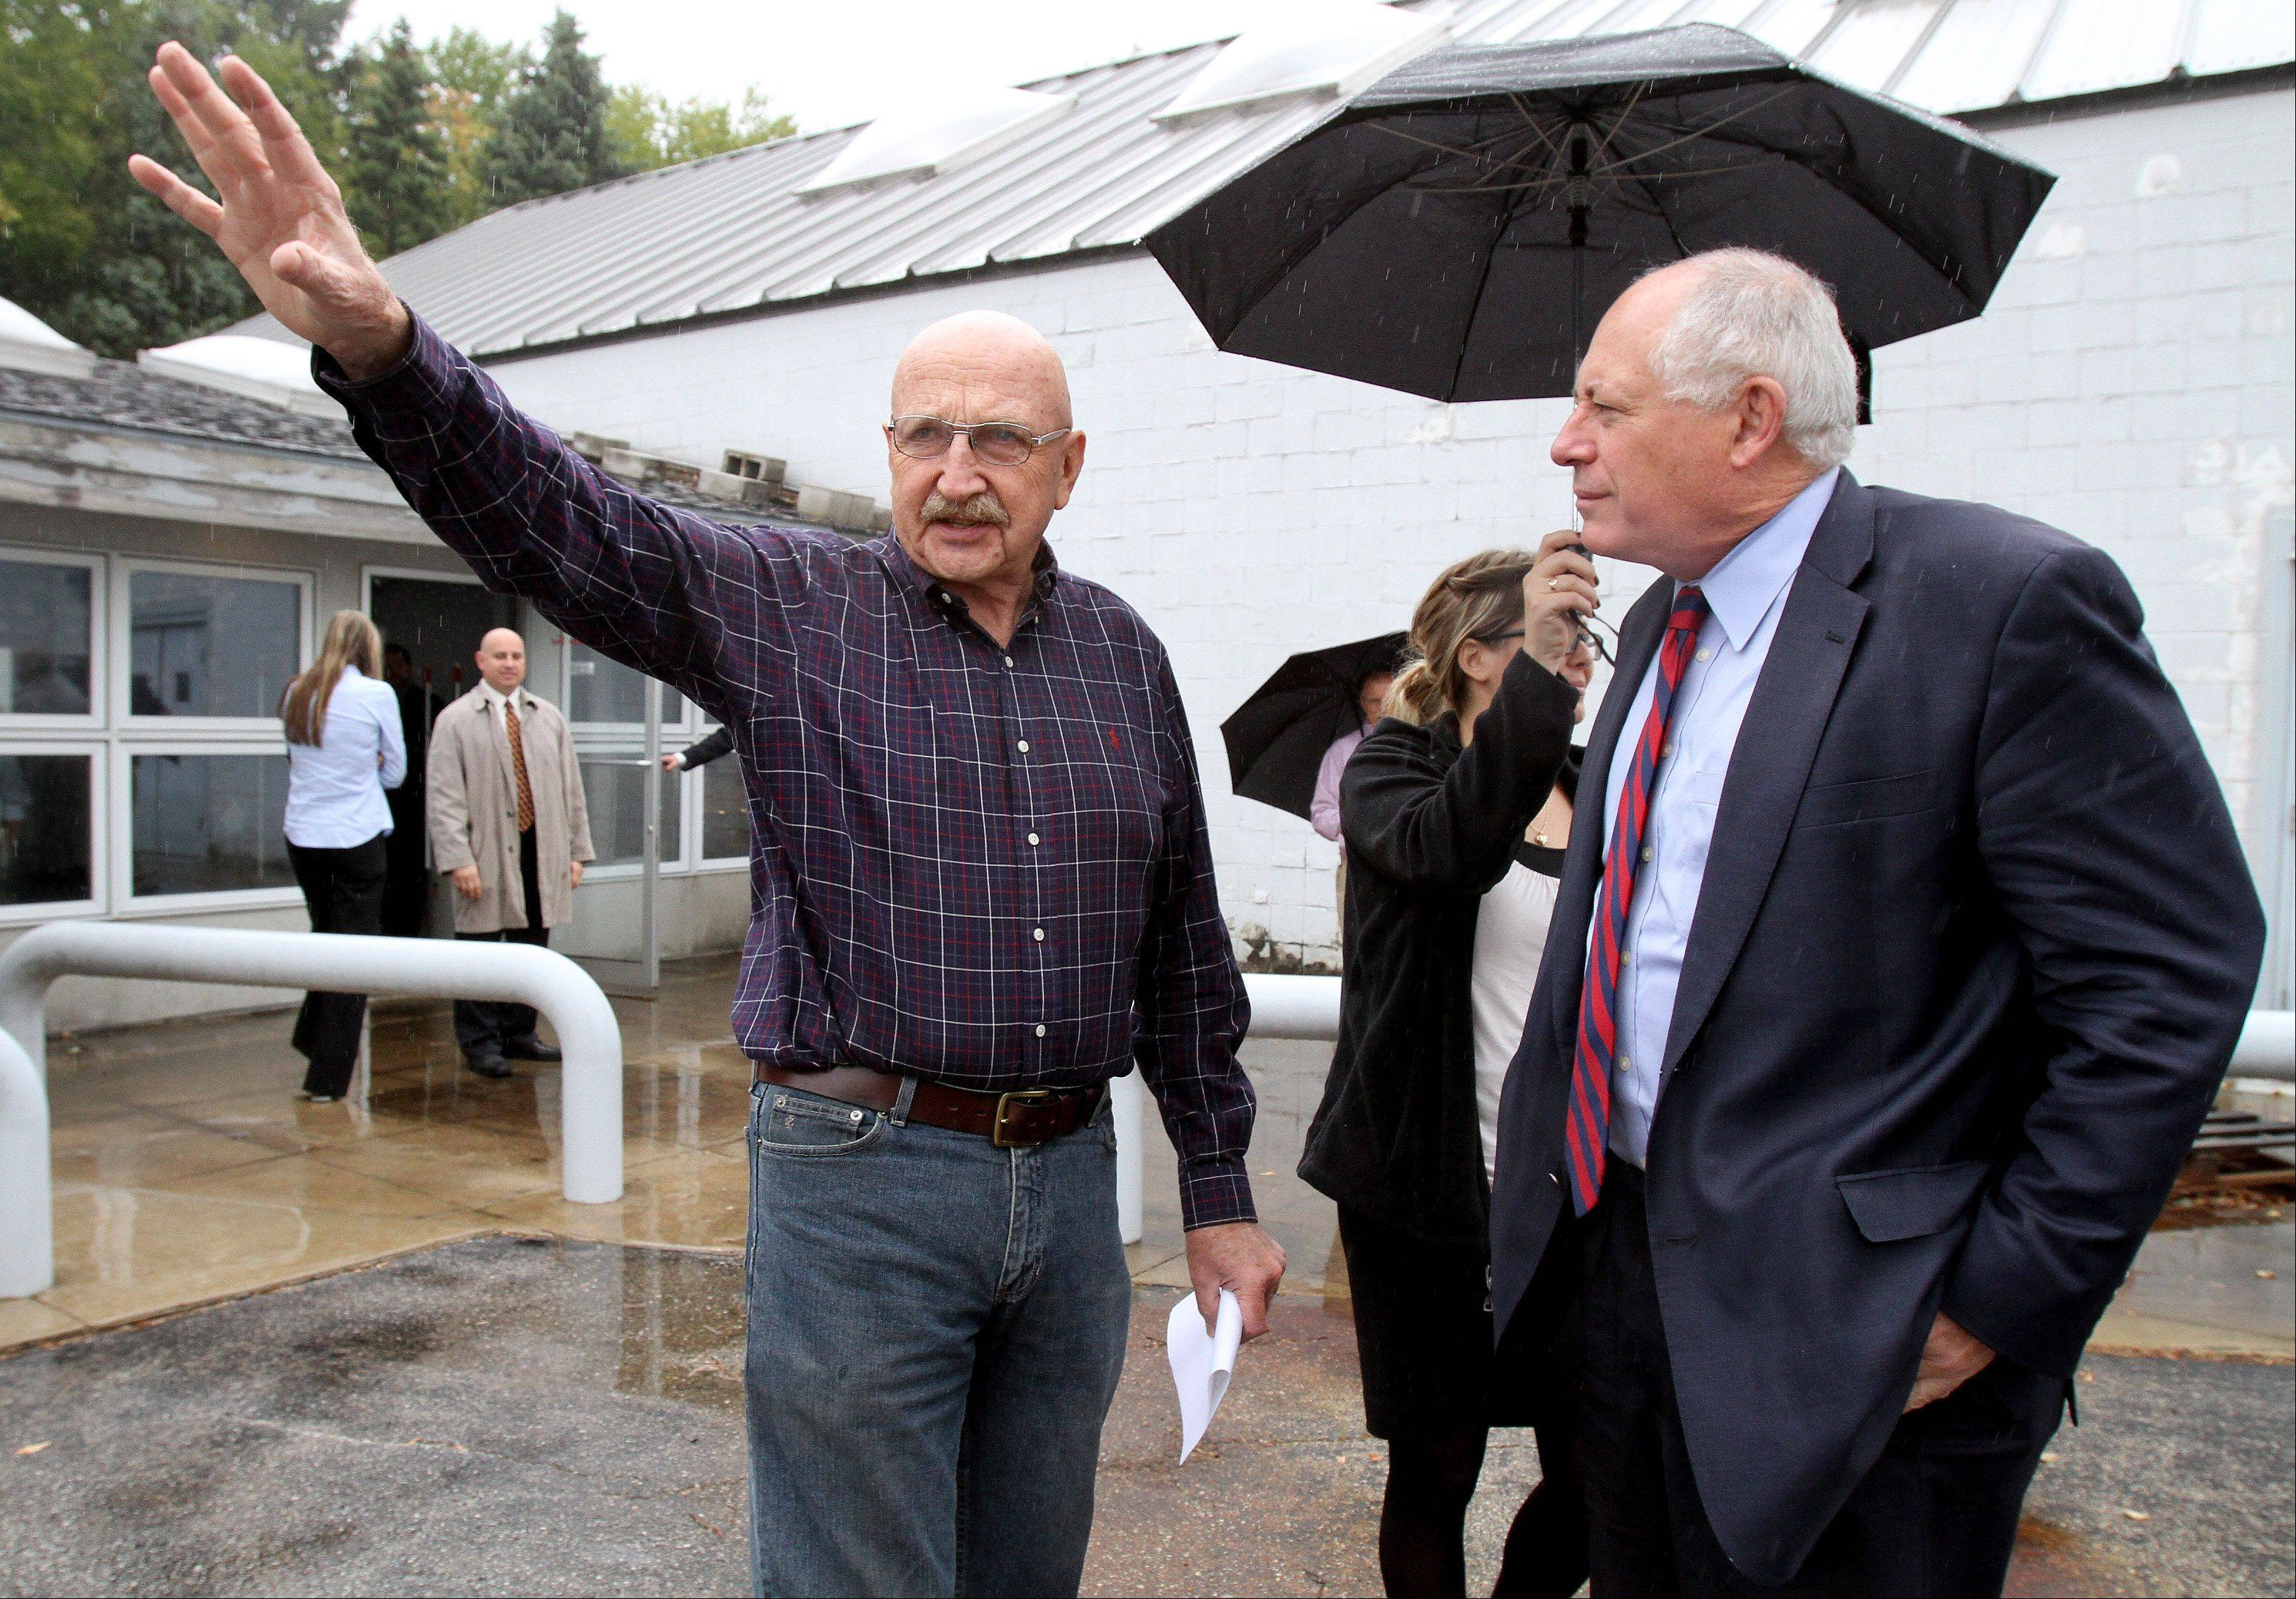 Bill Kautz, owner of Kautz Farm in West Chicago, meets with Gov. Pat Quinn, who announced plans for a $26 million overpass at Route 38 and Kautz Road.